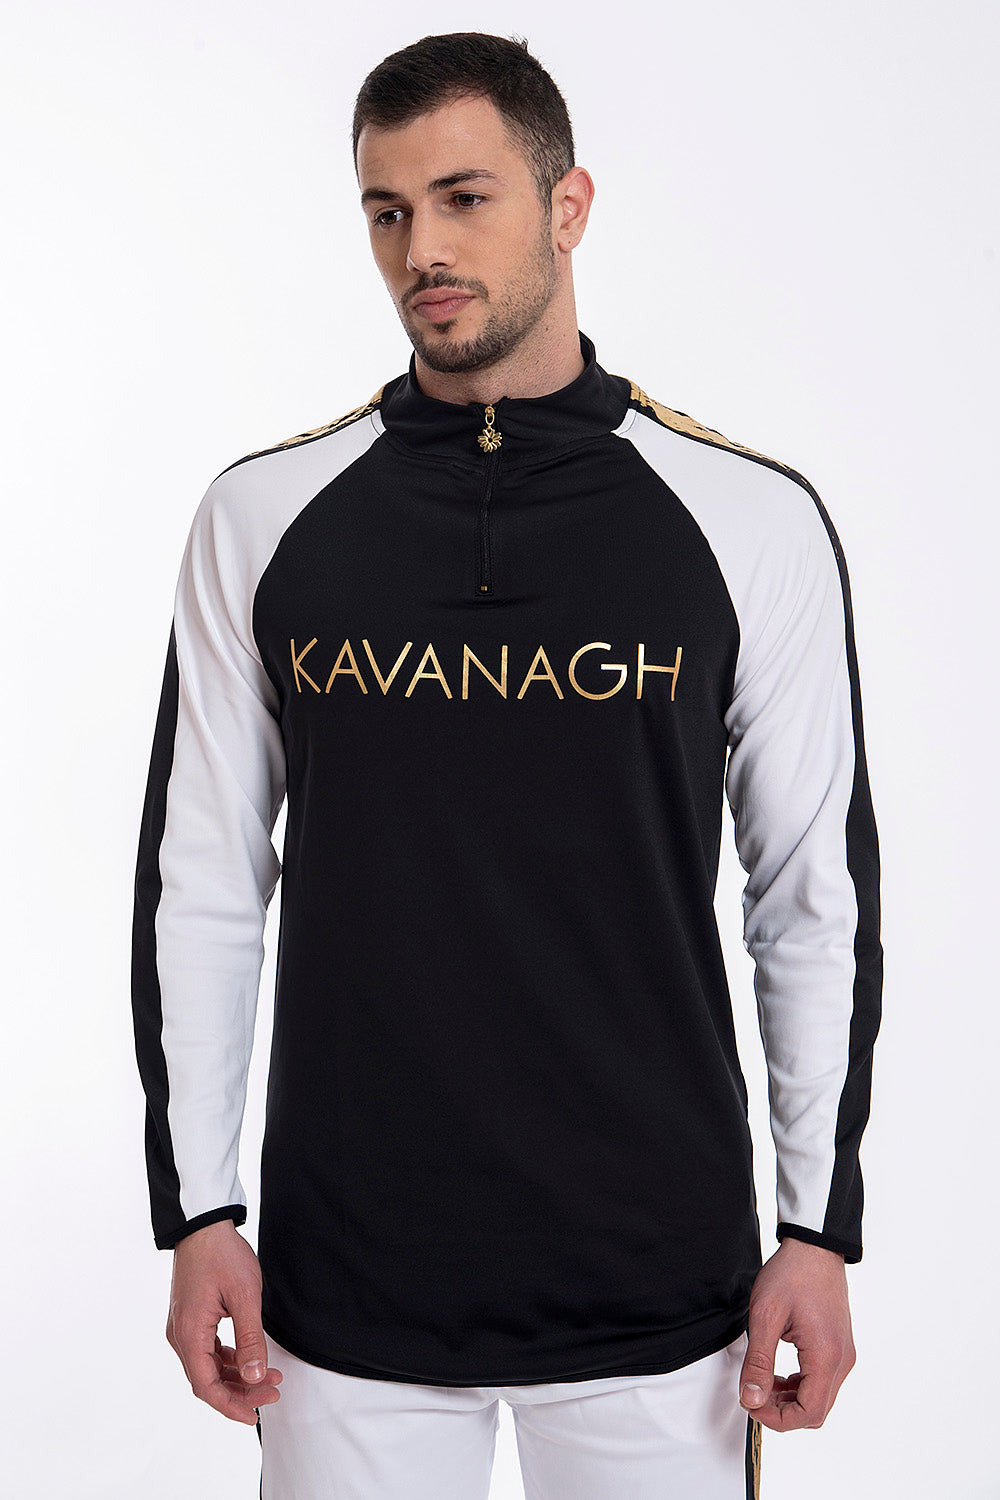 Kavanagh elasticated long sleeves top with front zip